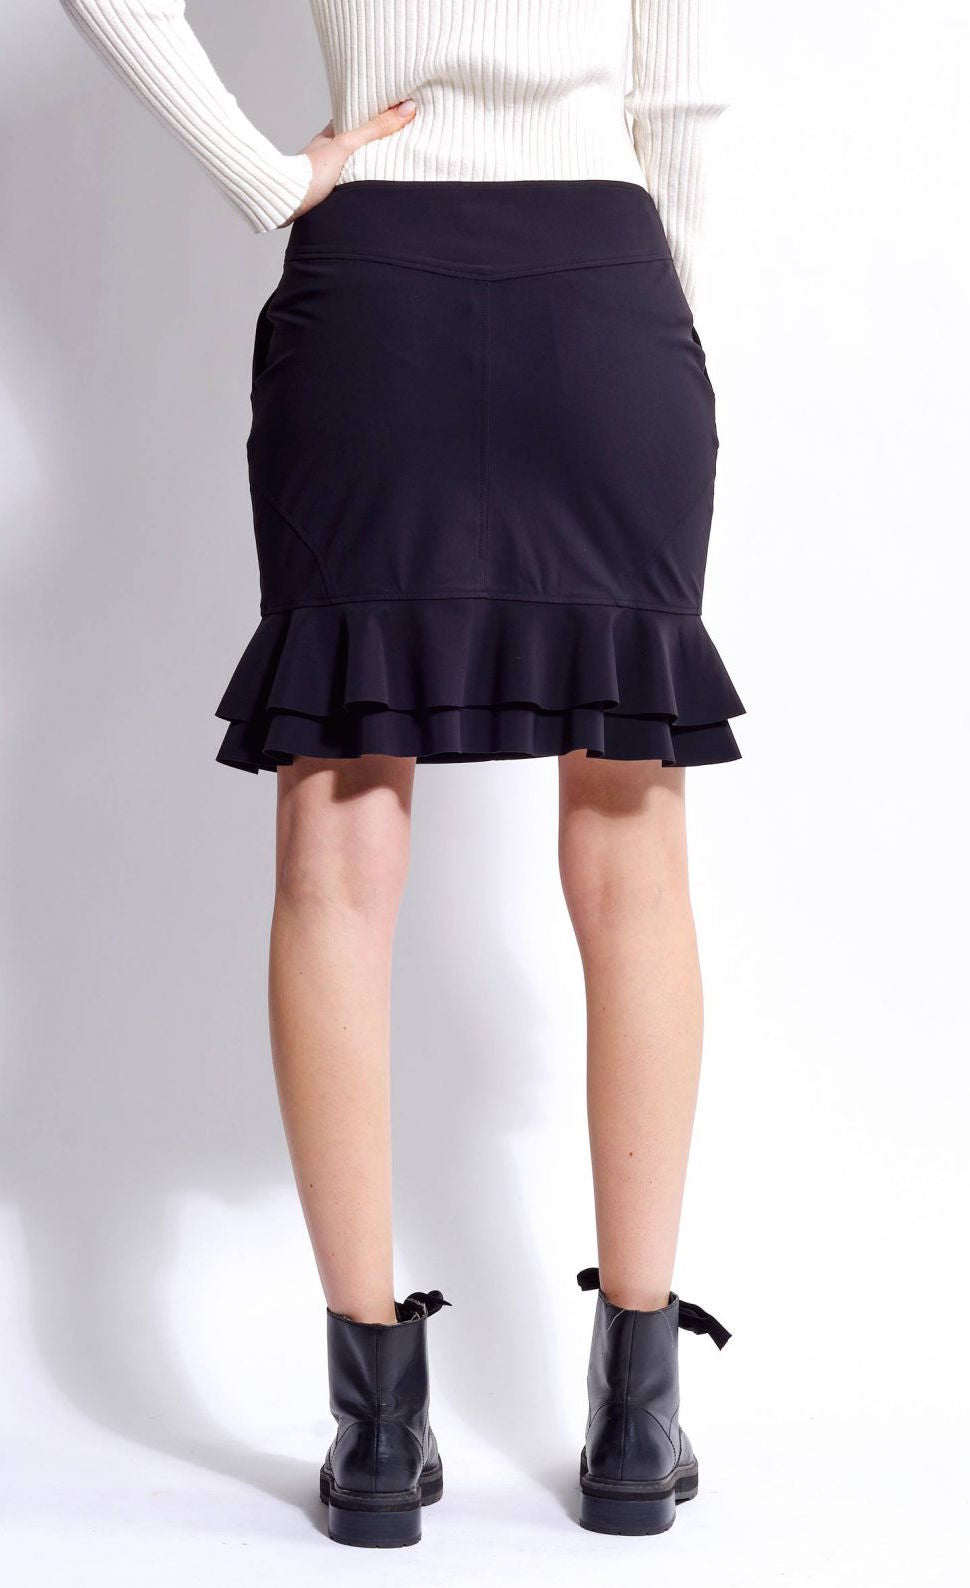 Back view of the bottom half of a woman wearing the mid-length indies cosmic black trumpet skirt with ruffles at the bottom.